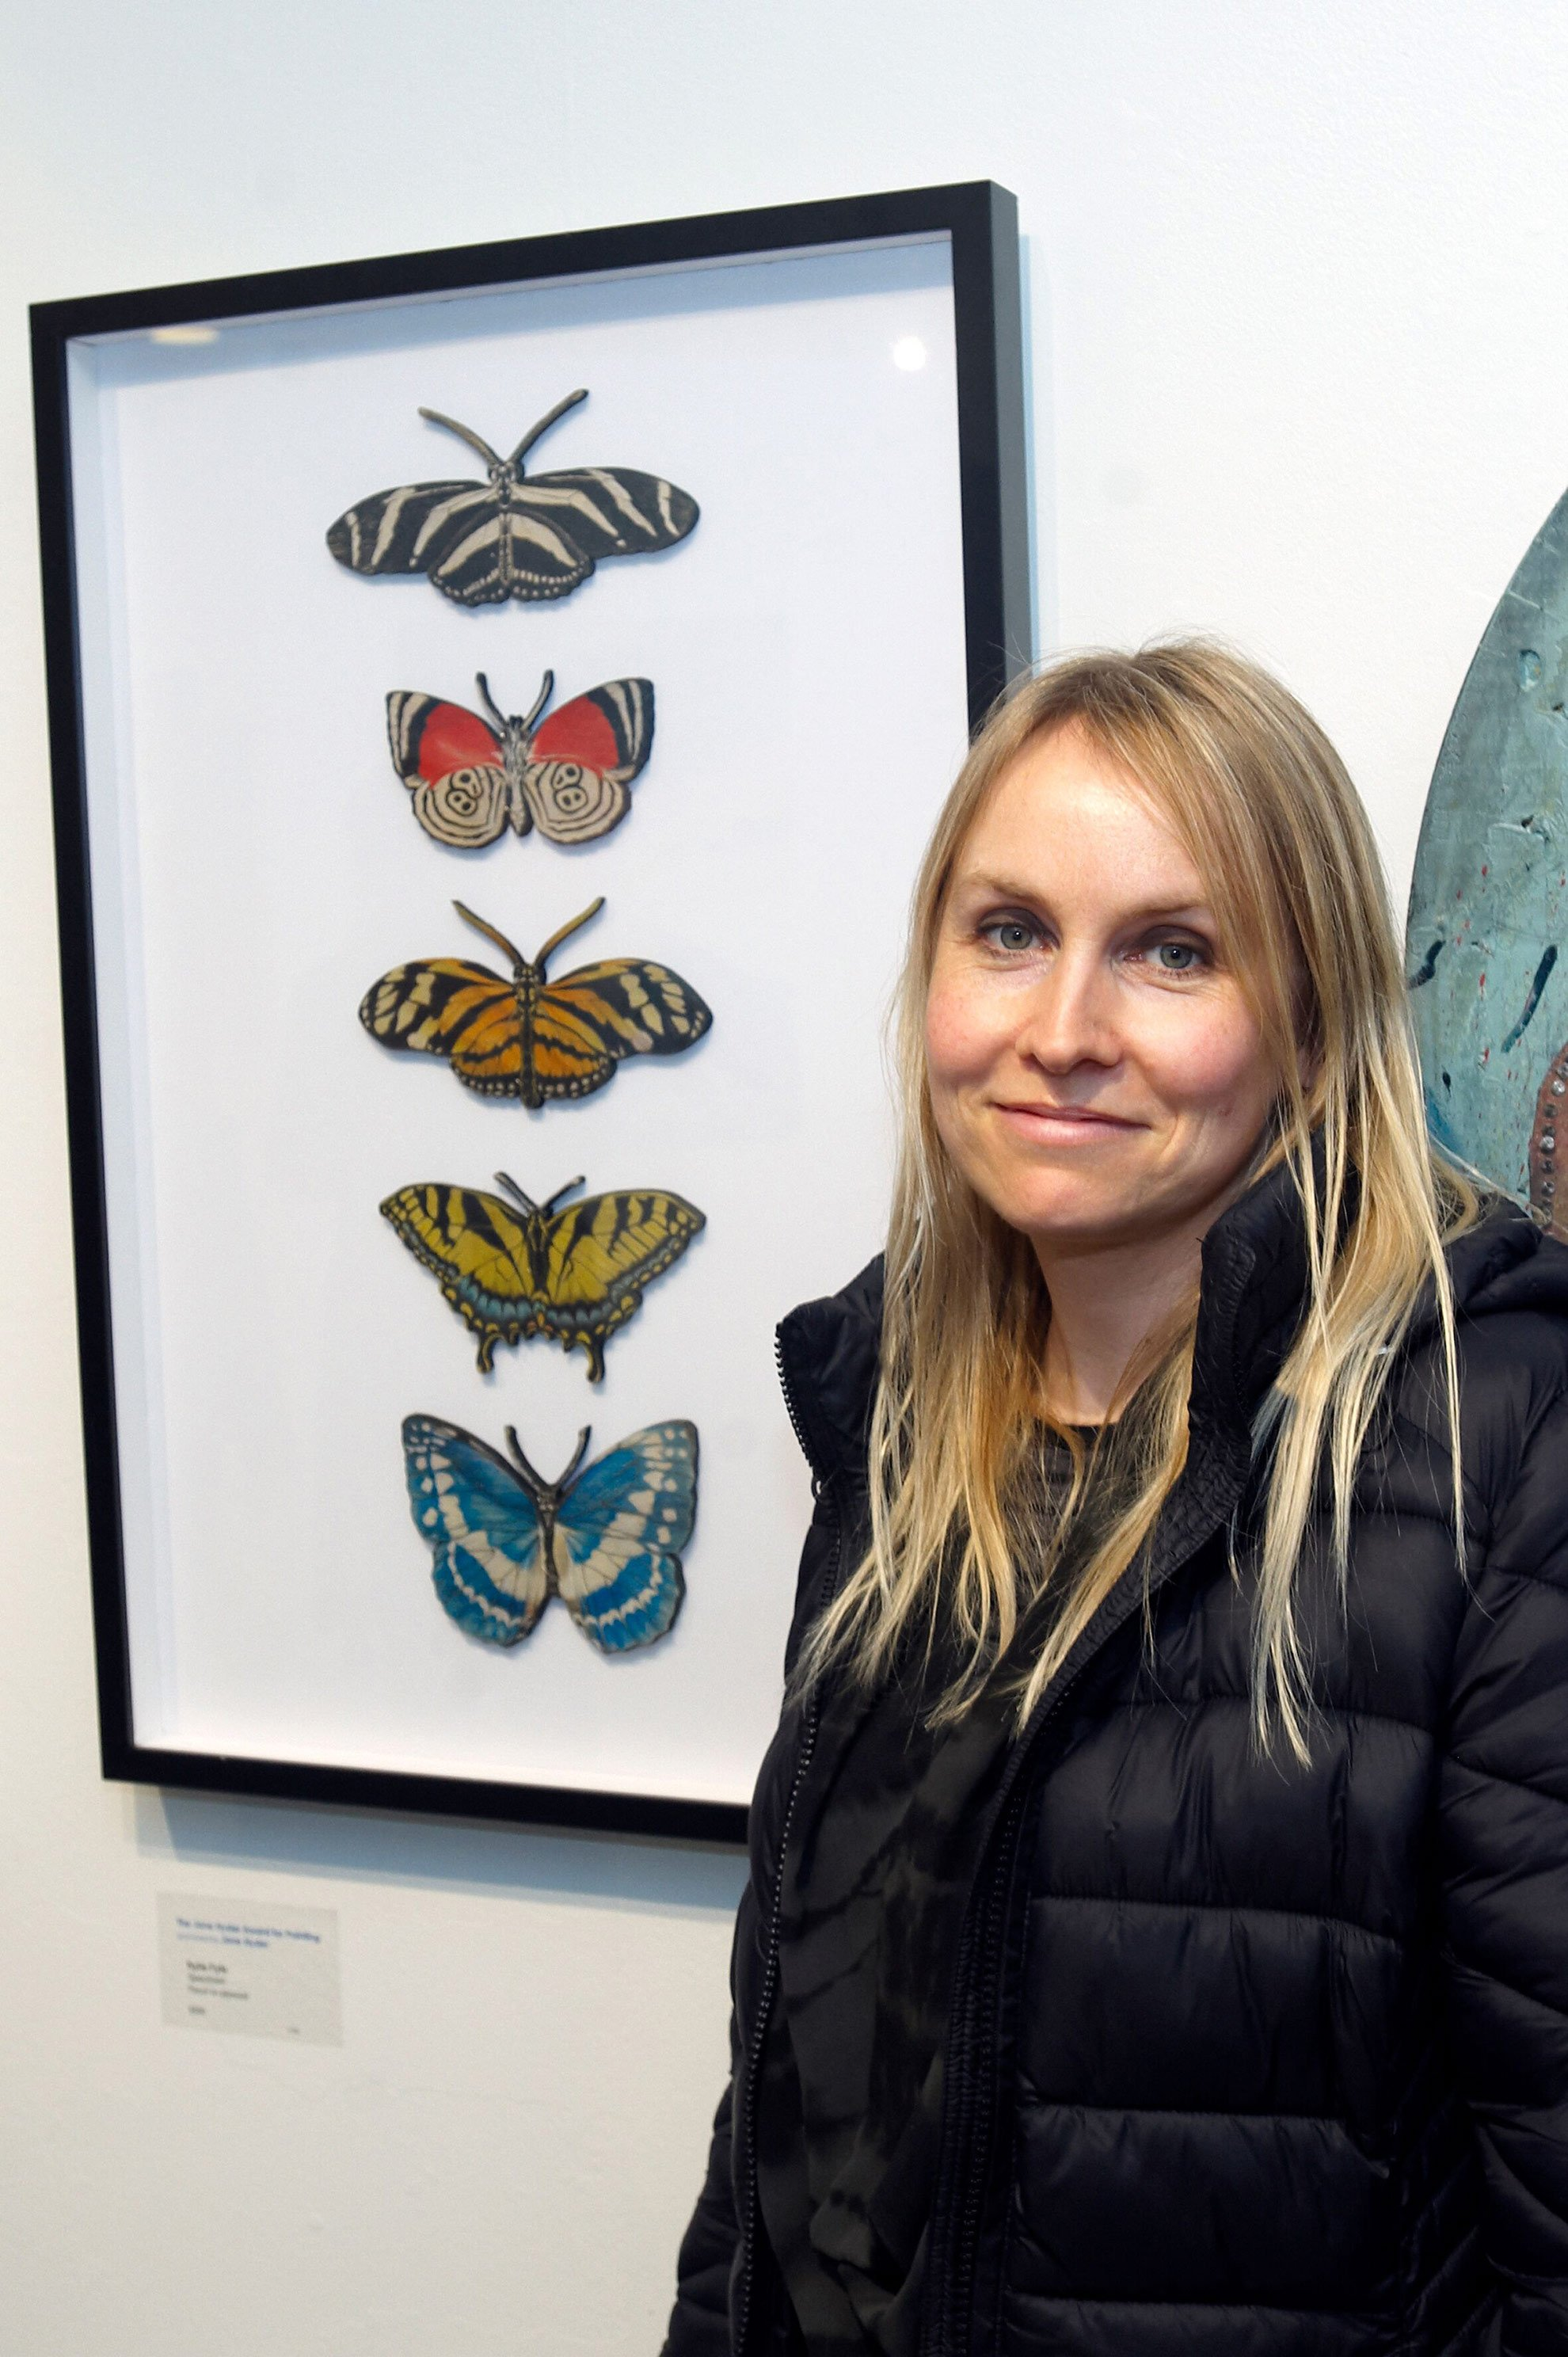 2019 Pātaka Friends Art Awards Jane Hyder Painting Award Winner Kylie Fyfe